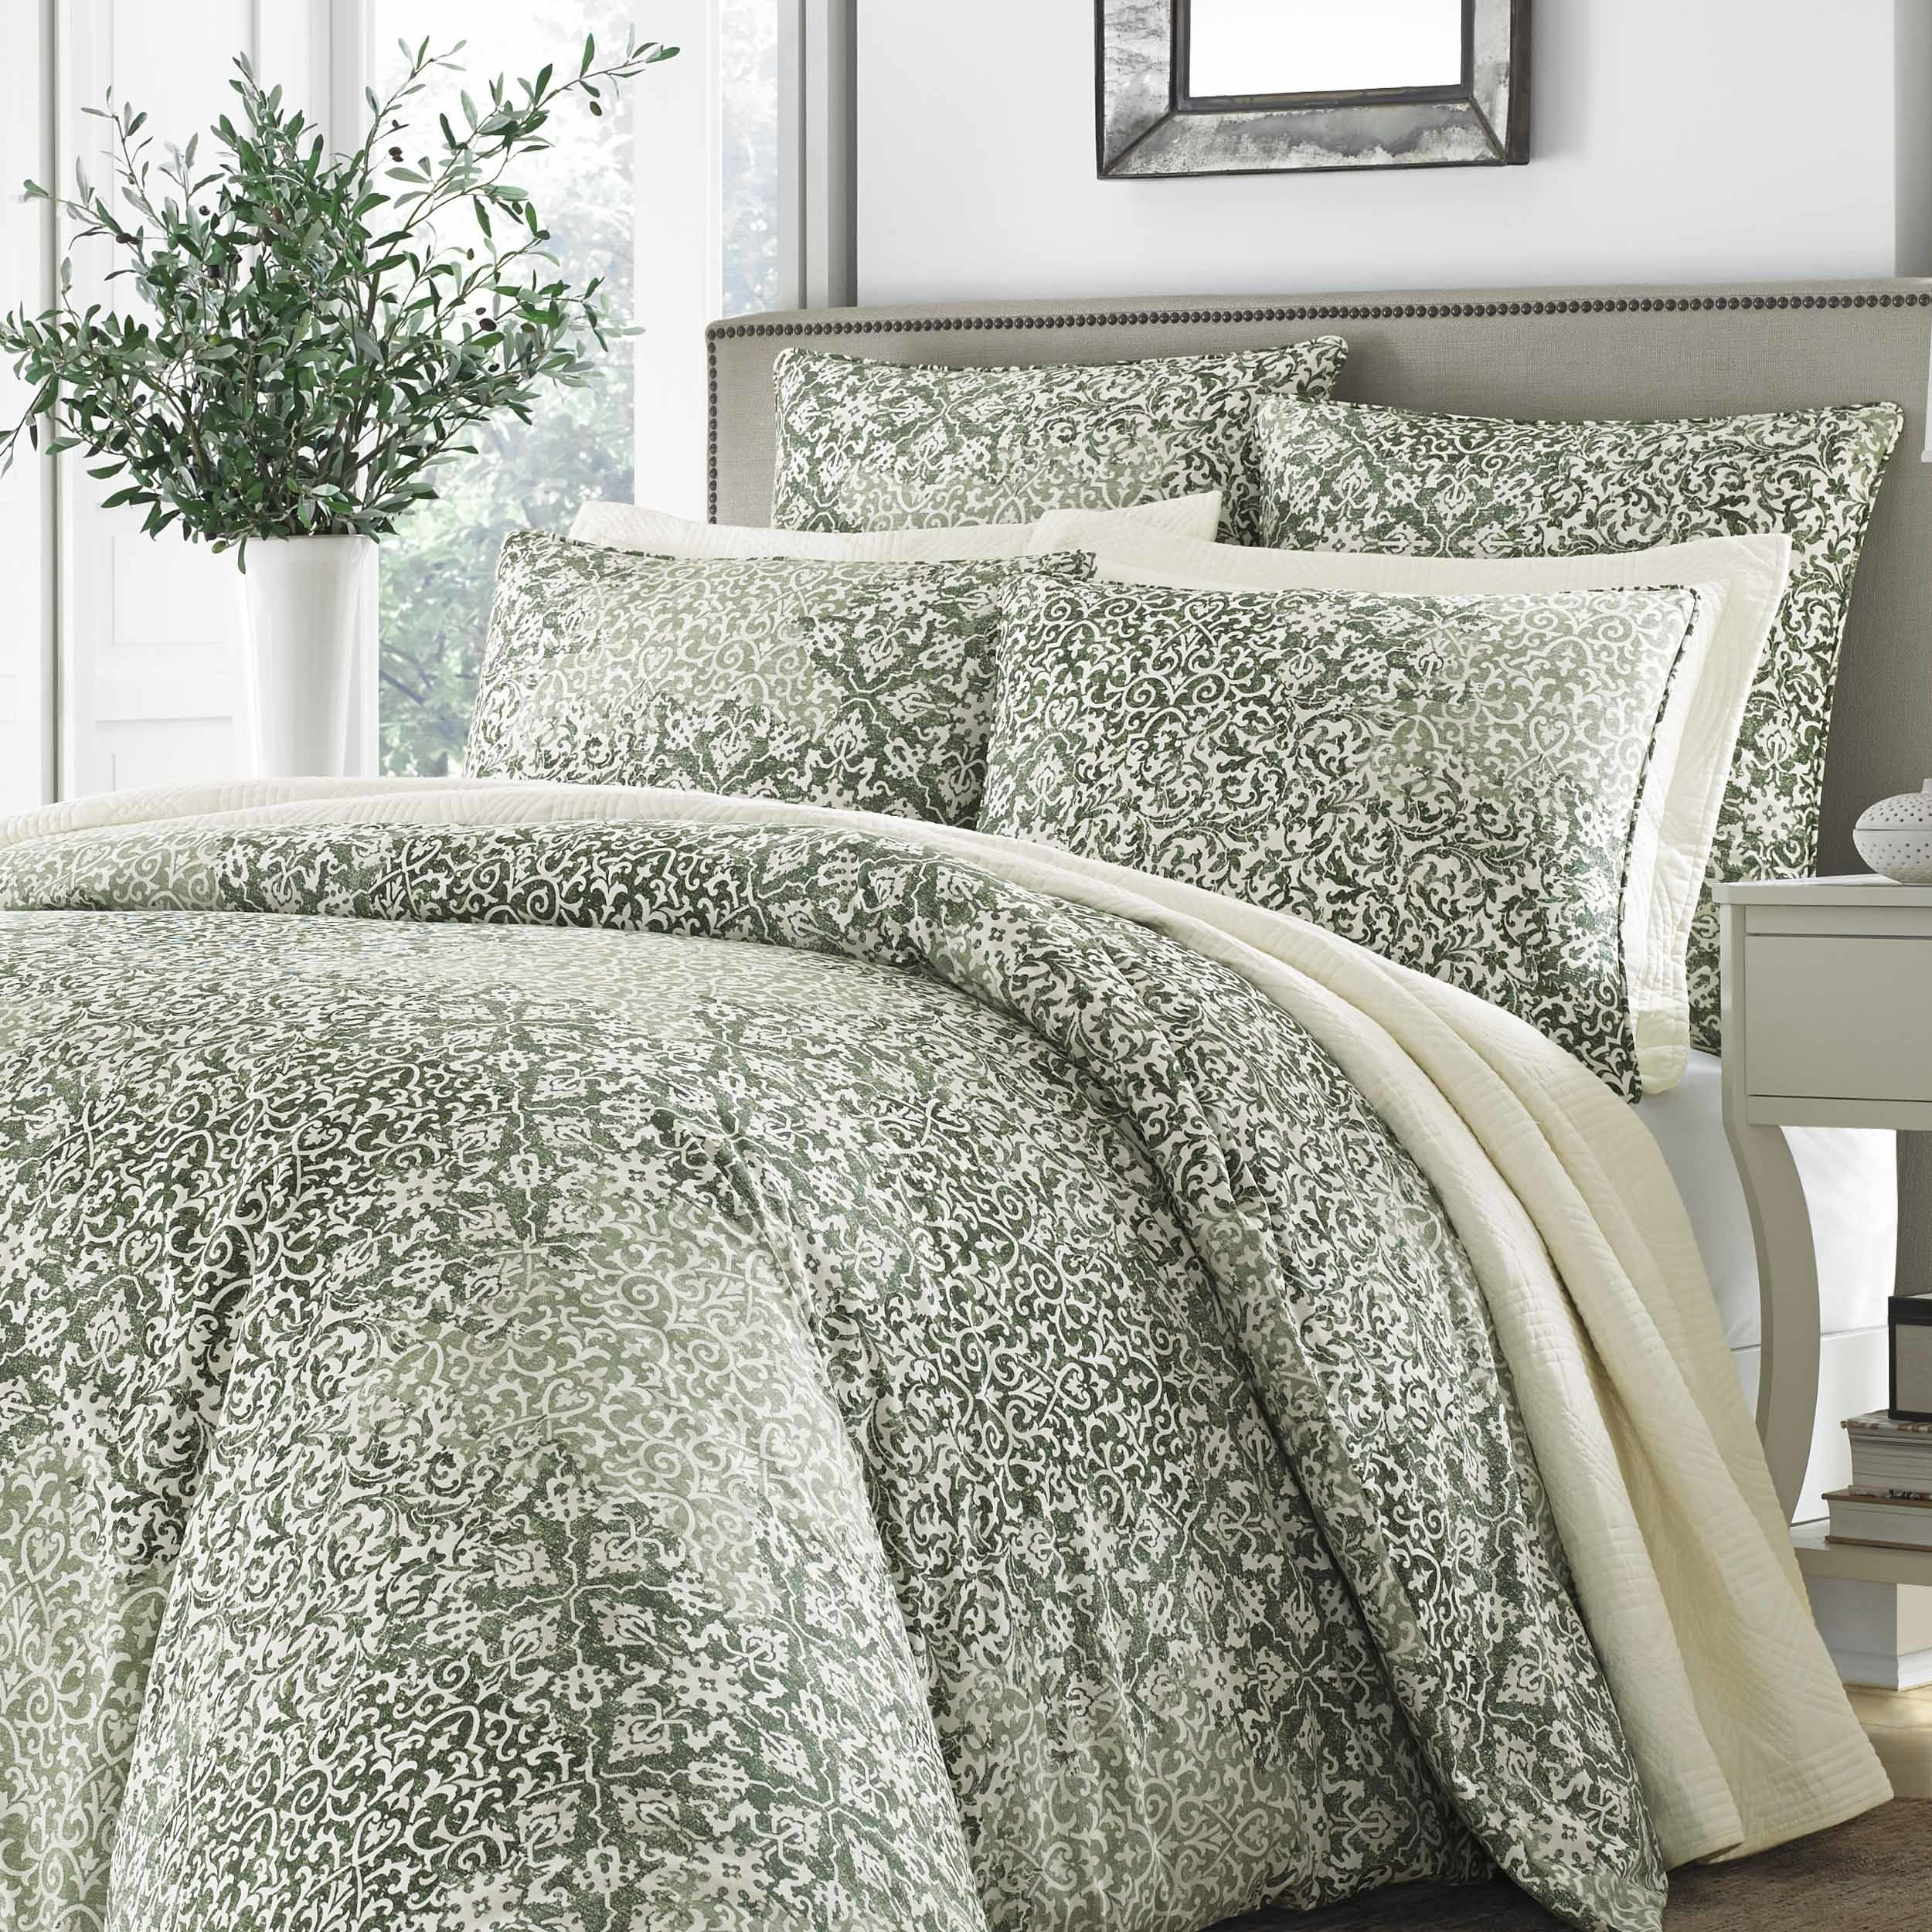 sets piece reviews comforter pdx co darby wayfair home set bath green lyndon bed